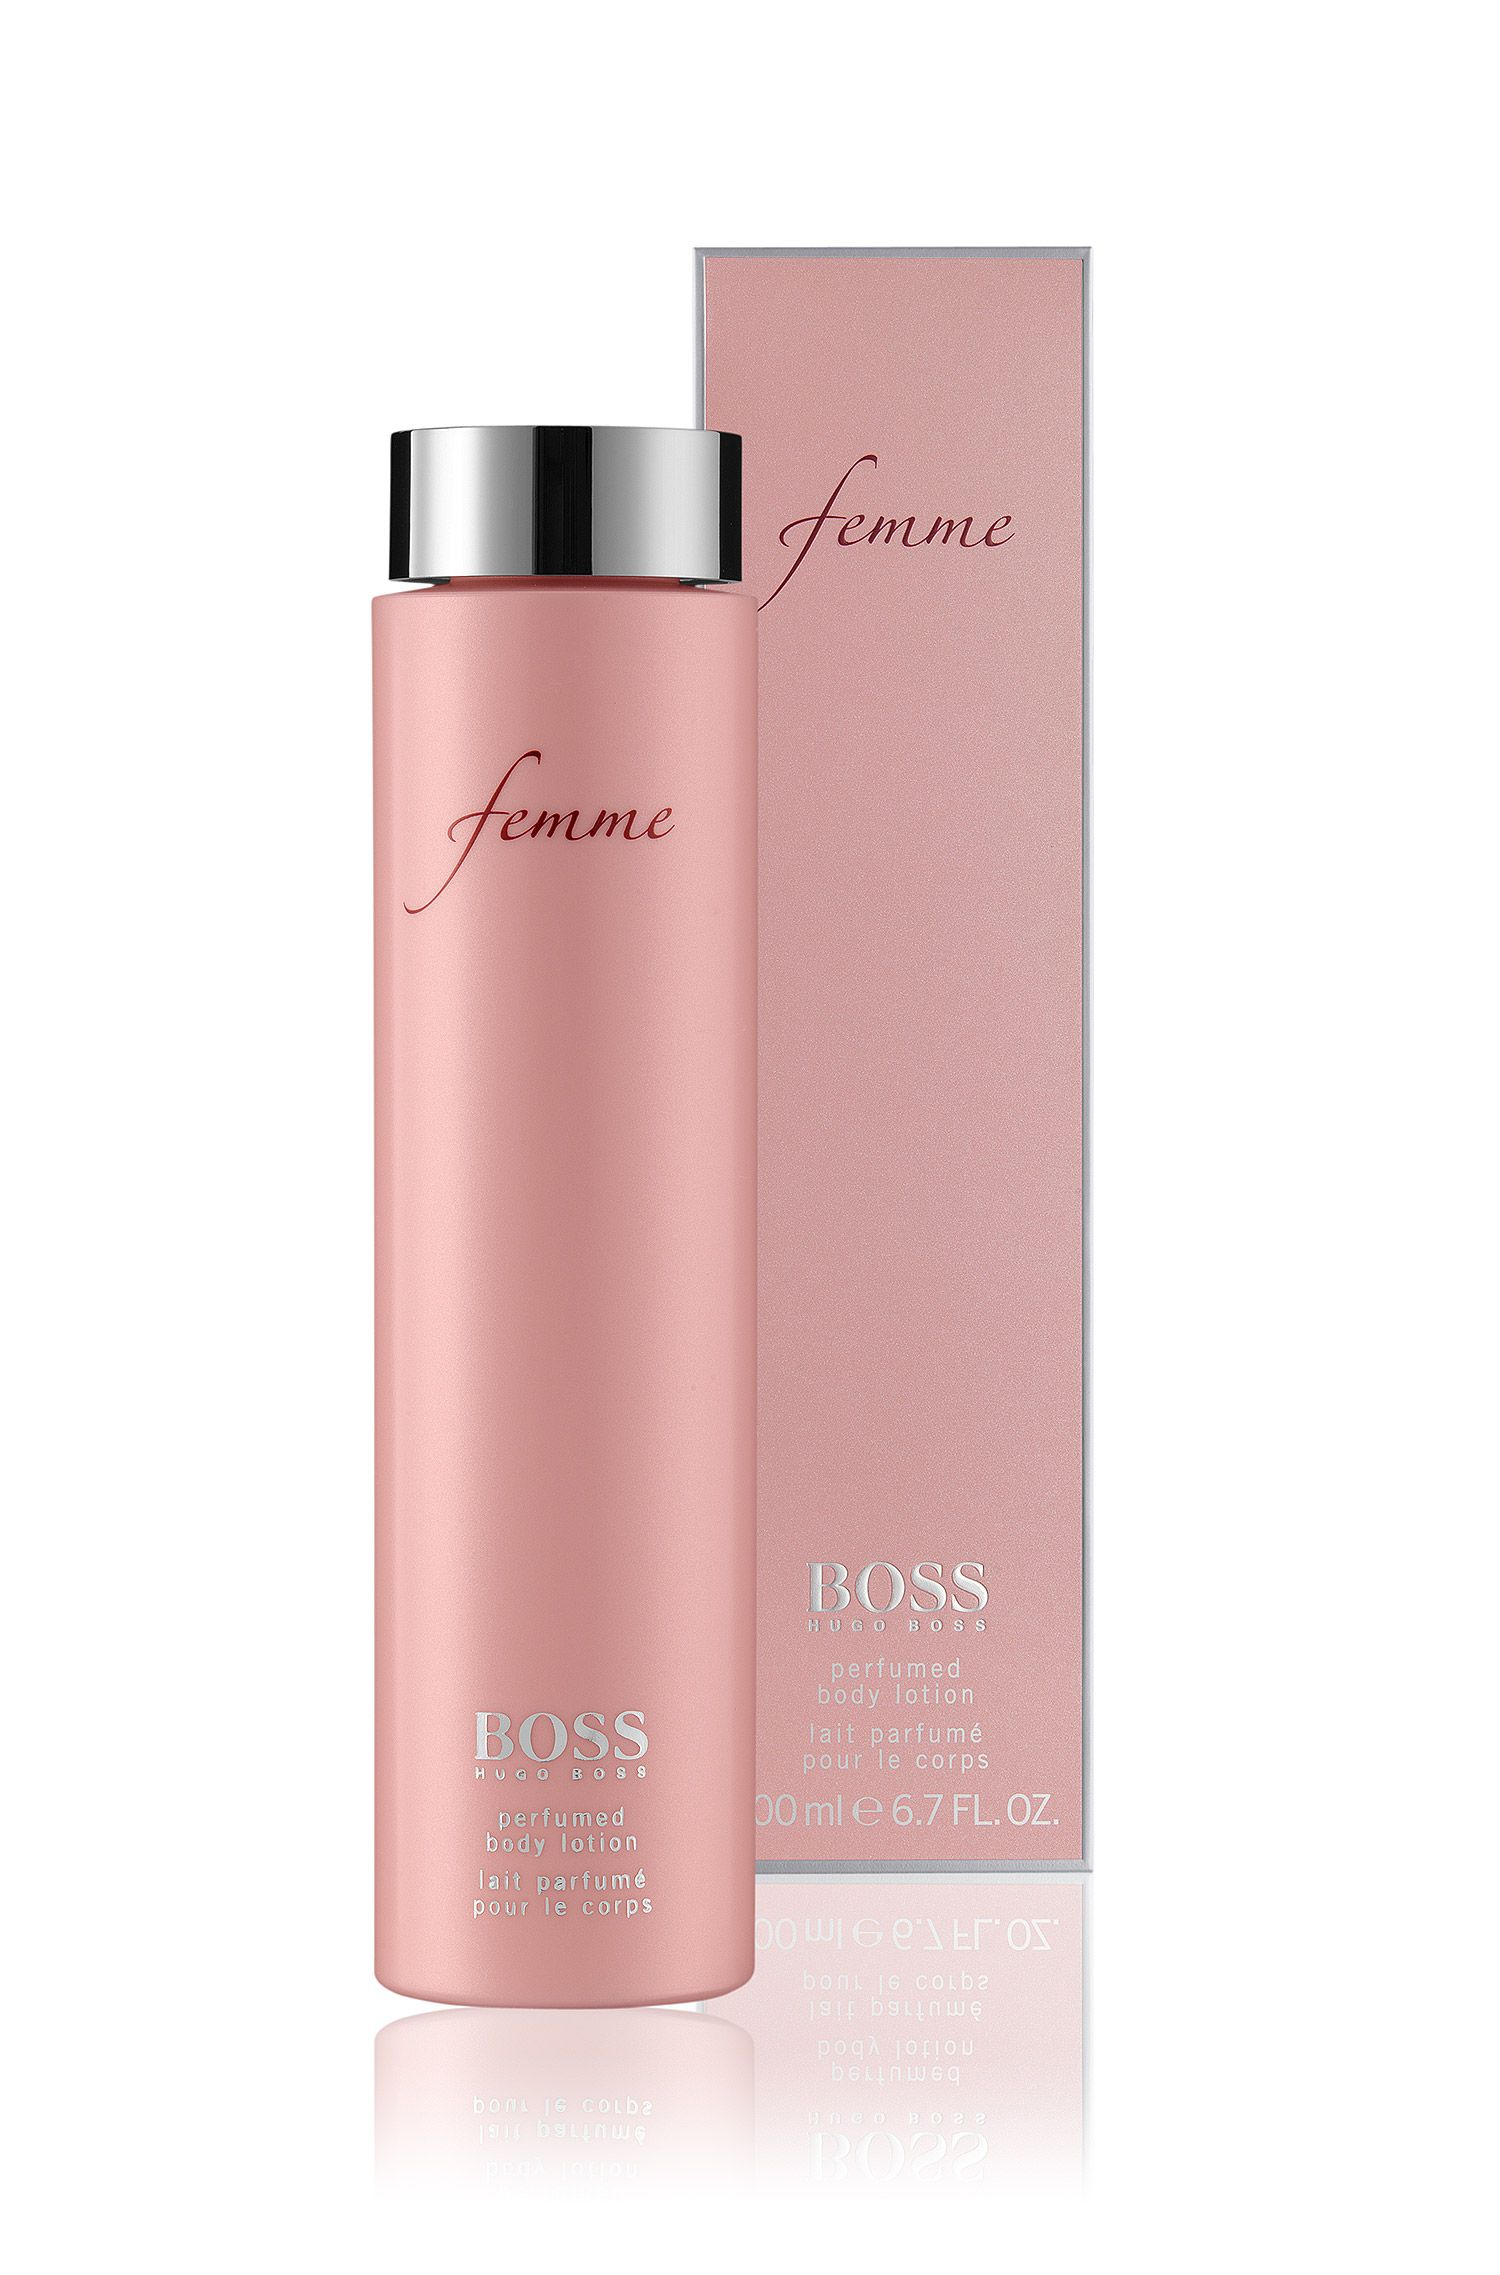 BOSS Femme Body Lotion 200 ml